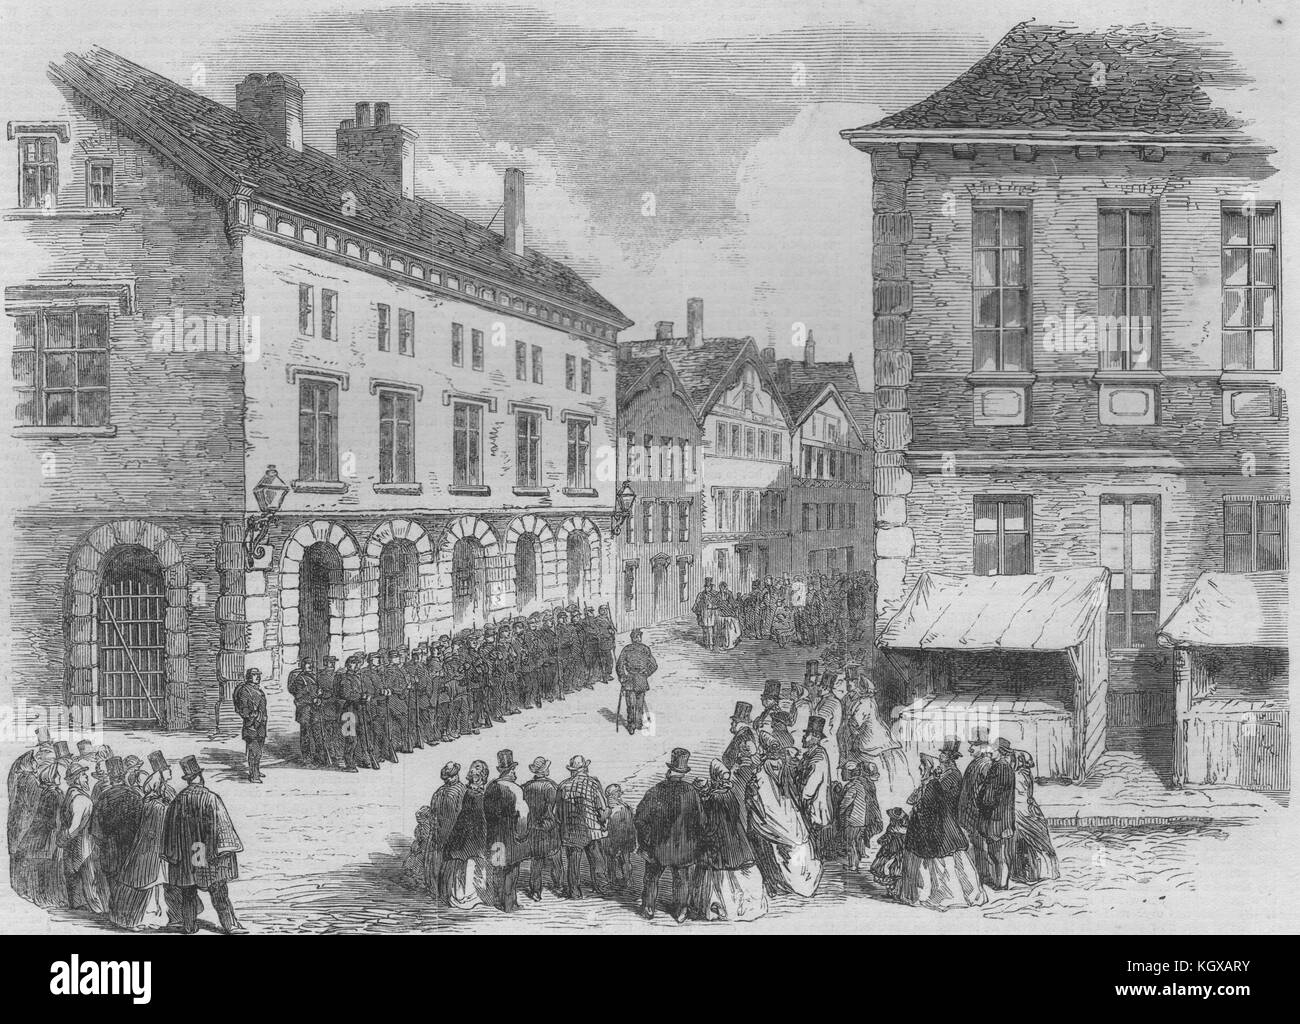 Danish troops at Altona awaiting Federal troops to quit the guardhouse 1864. The Illustrated London News - Stock Image